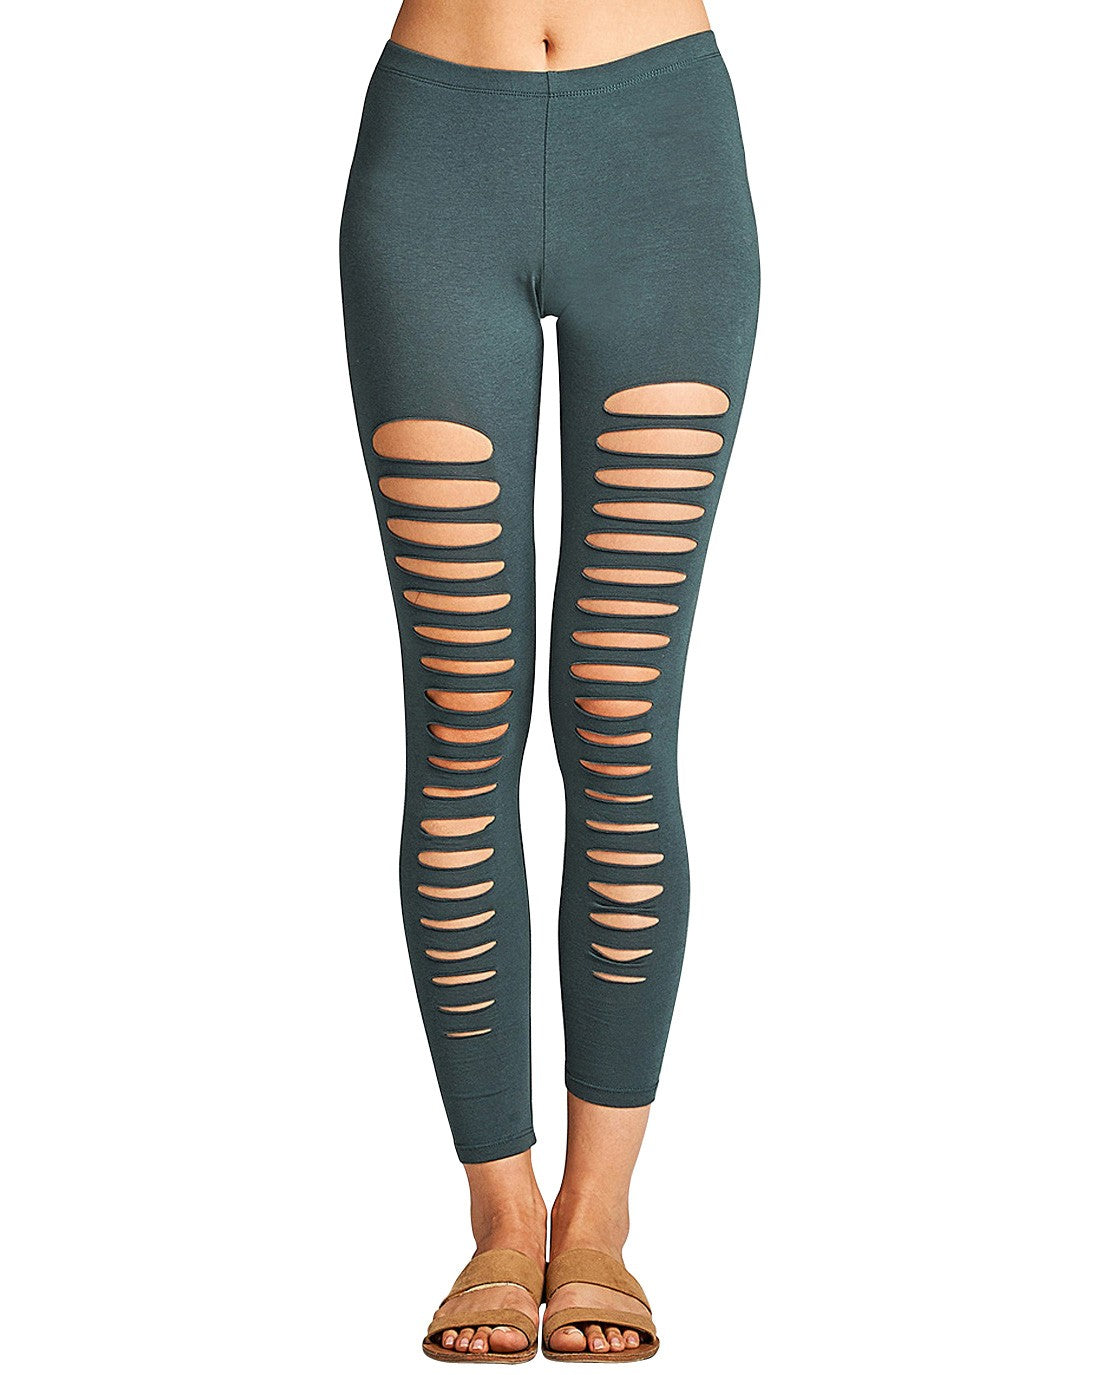 Ripped design stretch-knit leggings